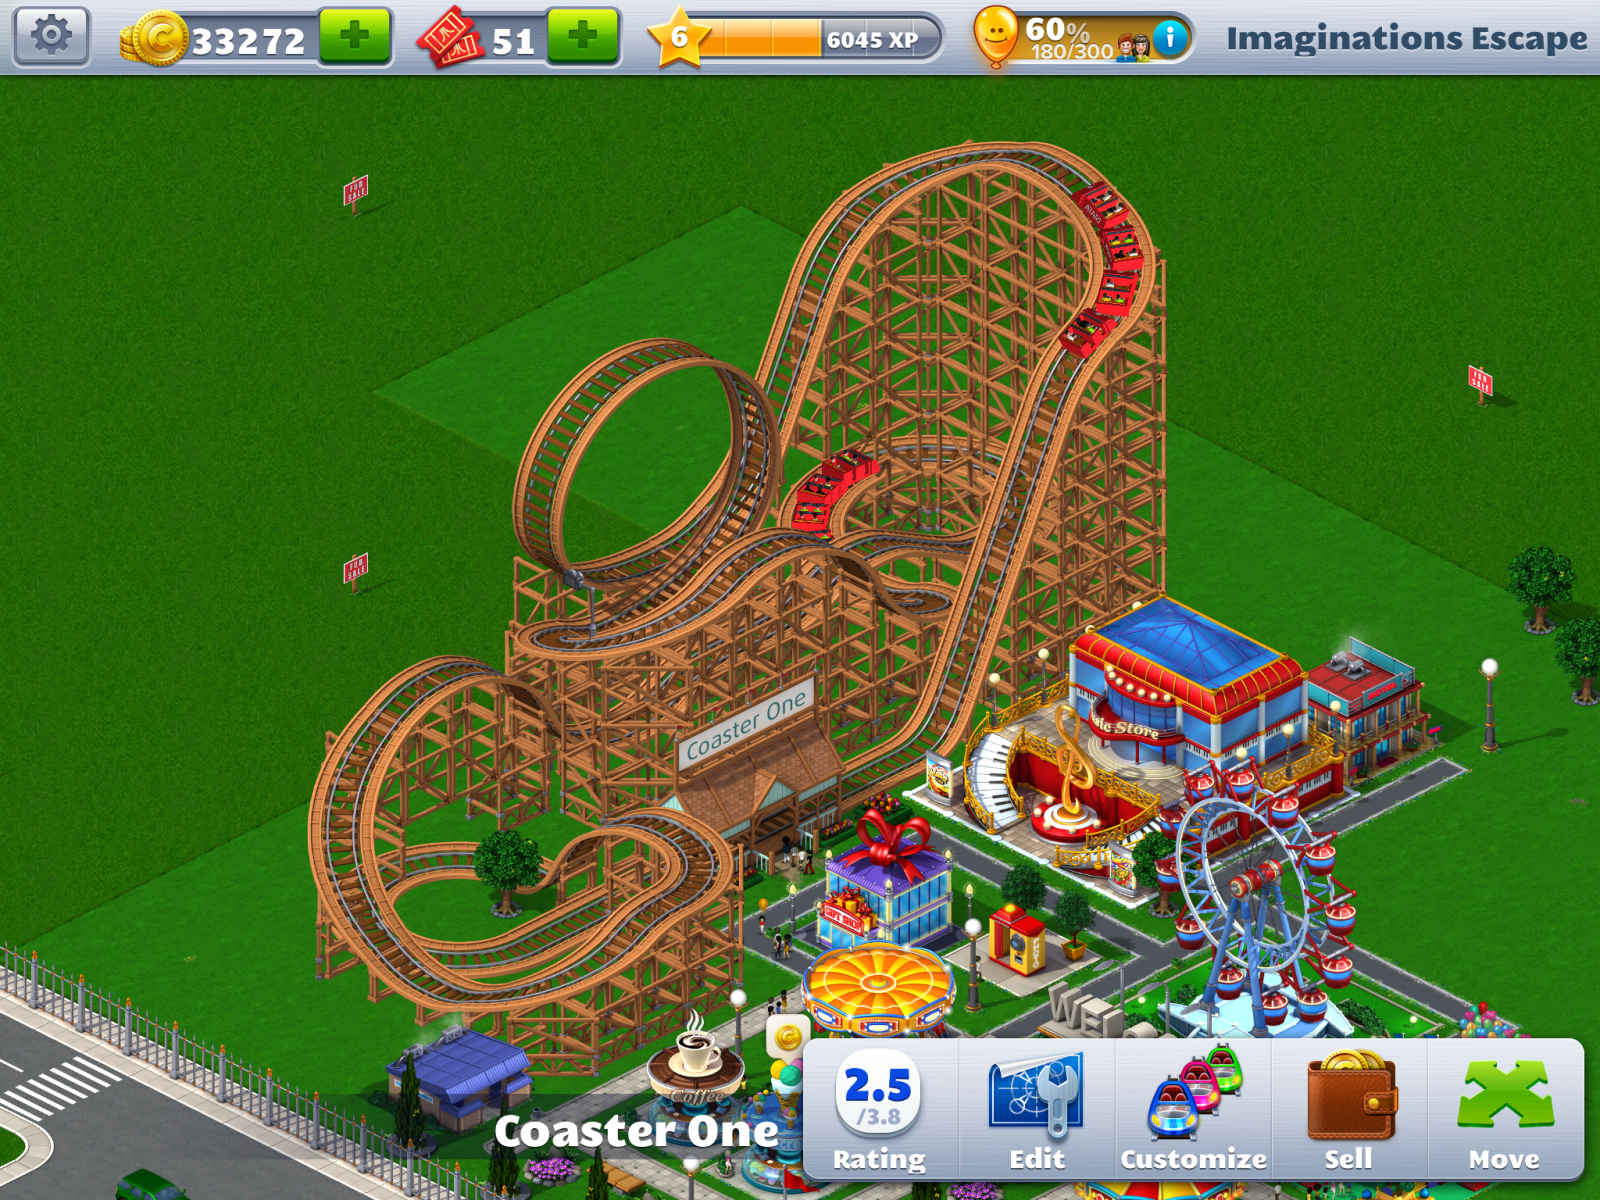 RCT 4 Mobile (not a good game)